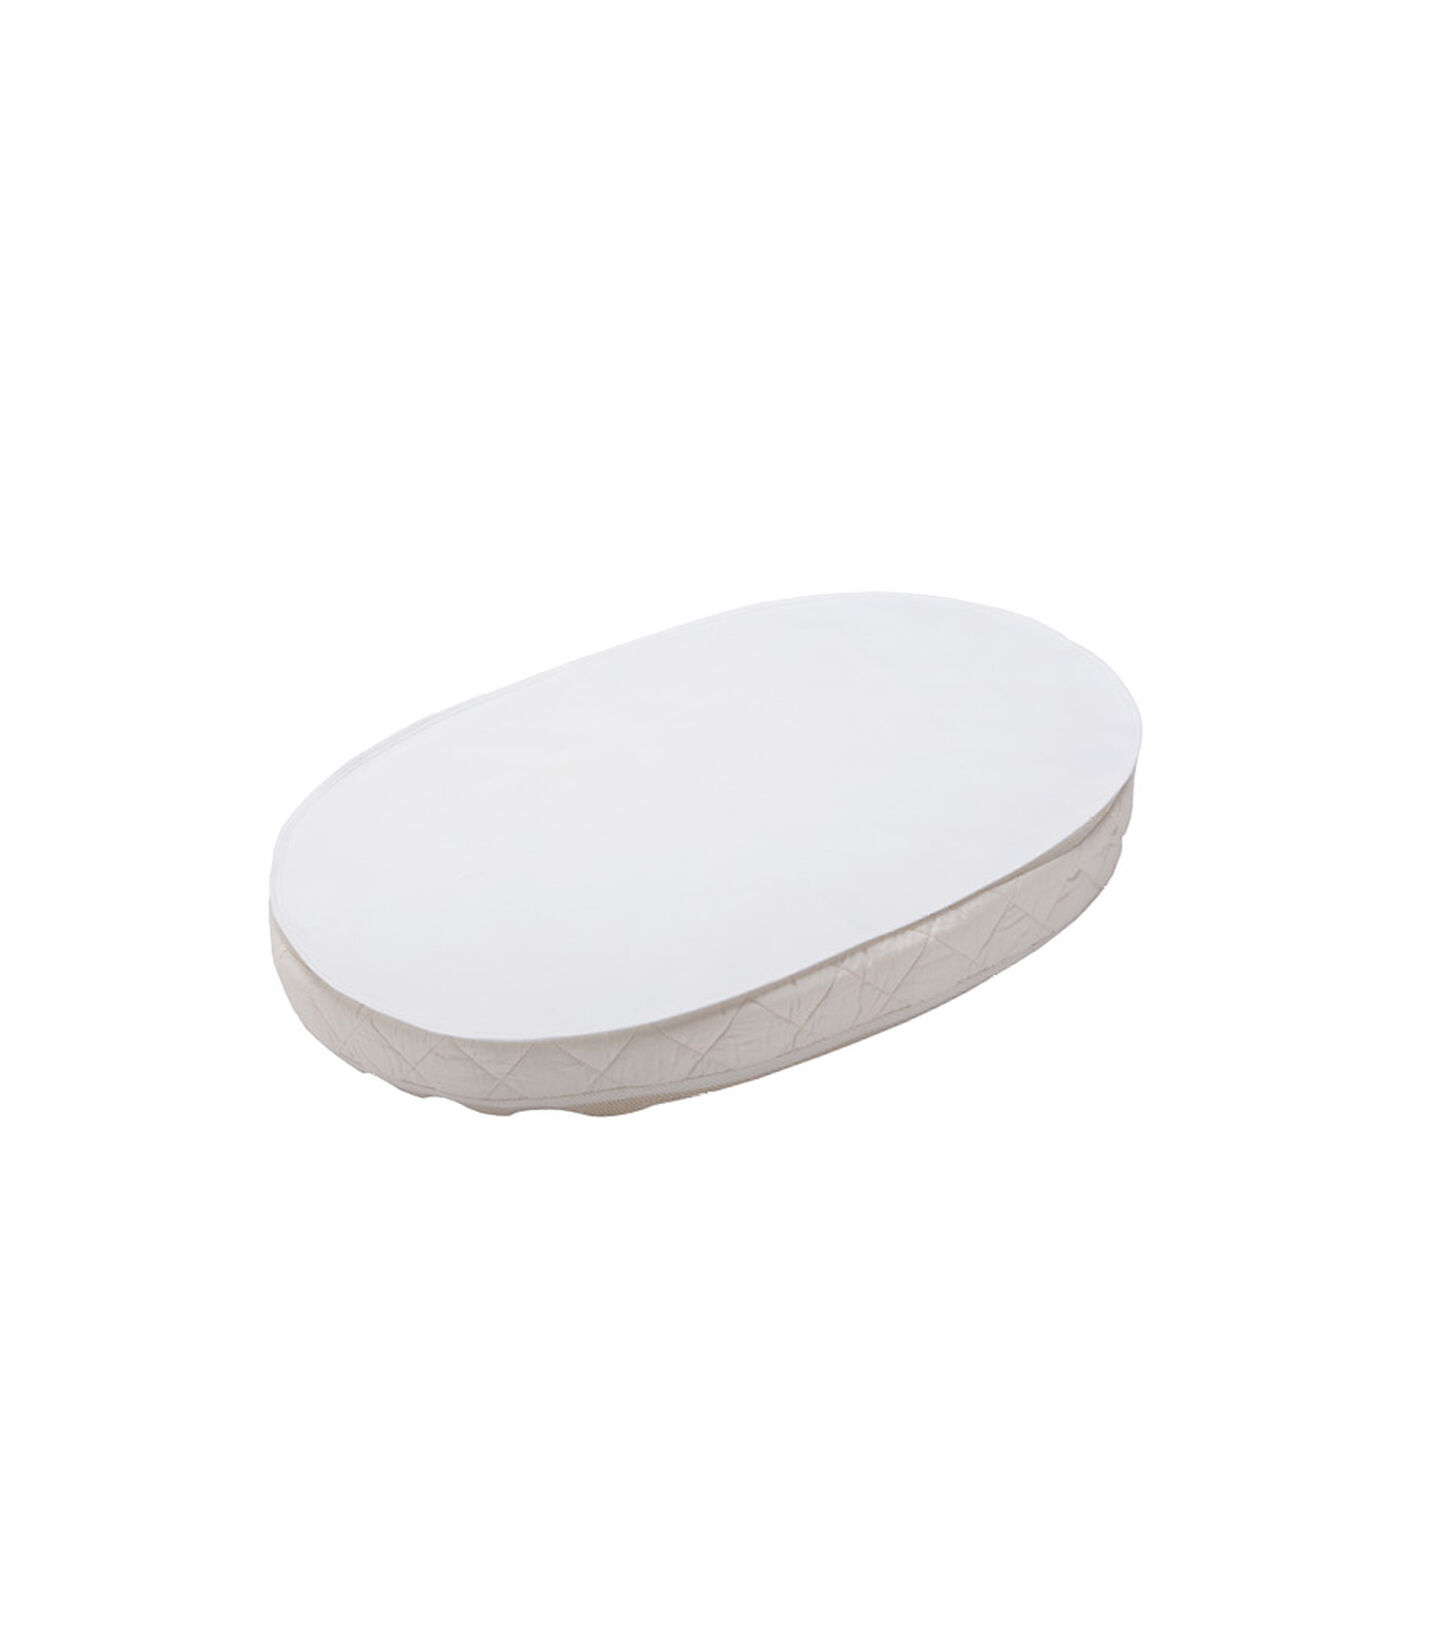 Stokke® Sleepi™ Mini Protection Sheet Oval, , mainview view 2